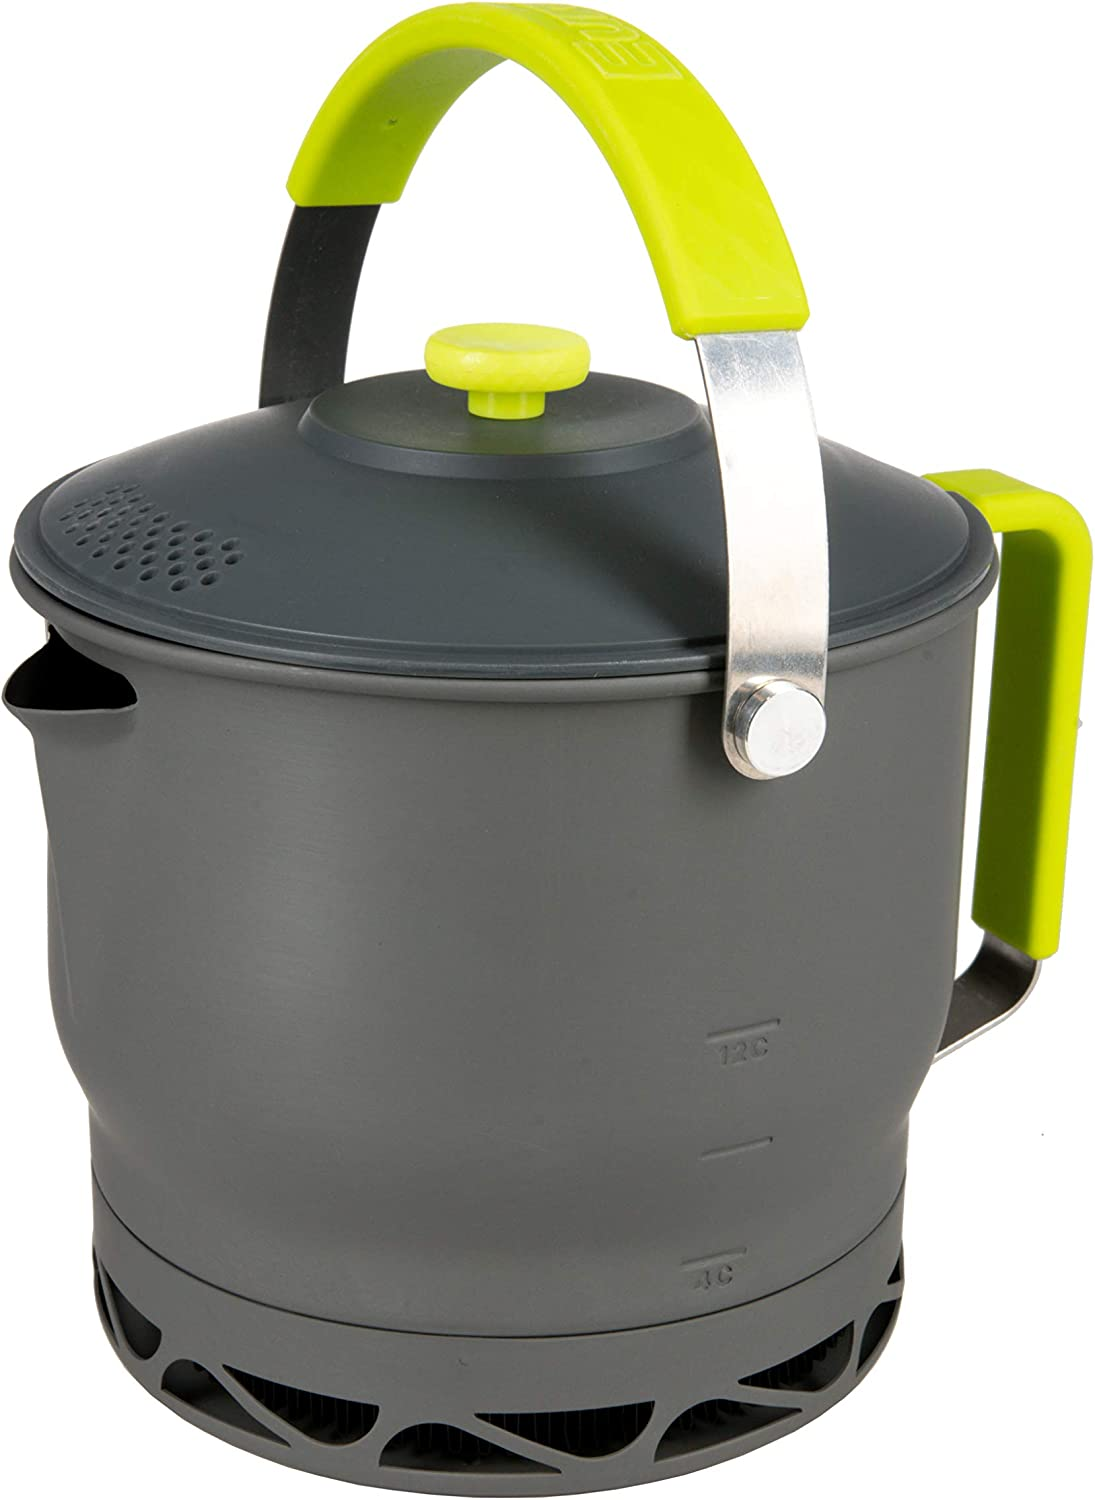 Image of a coffee-maker kettle style with gray body and yellow-green handle.